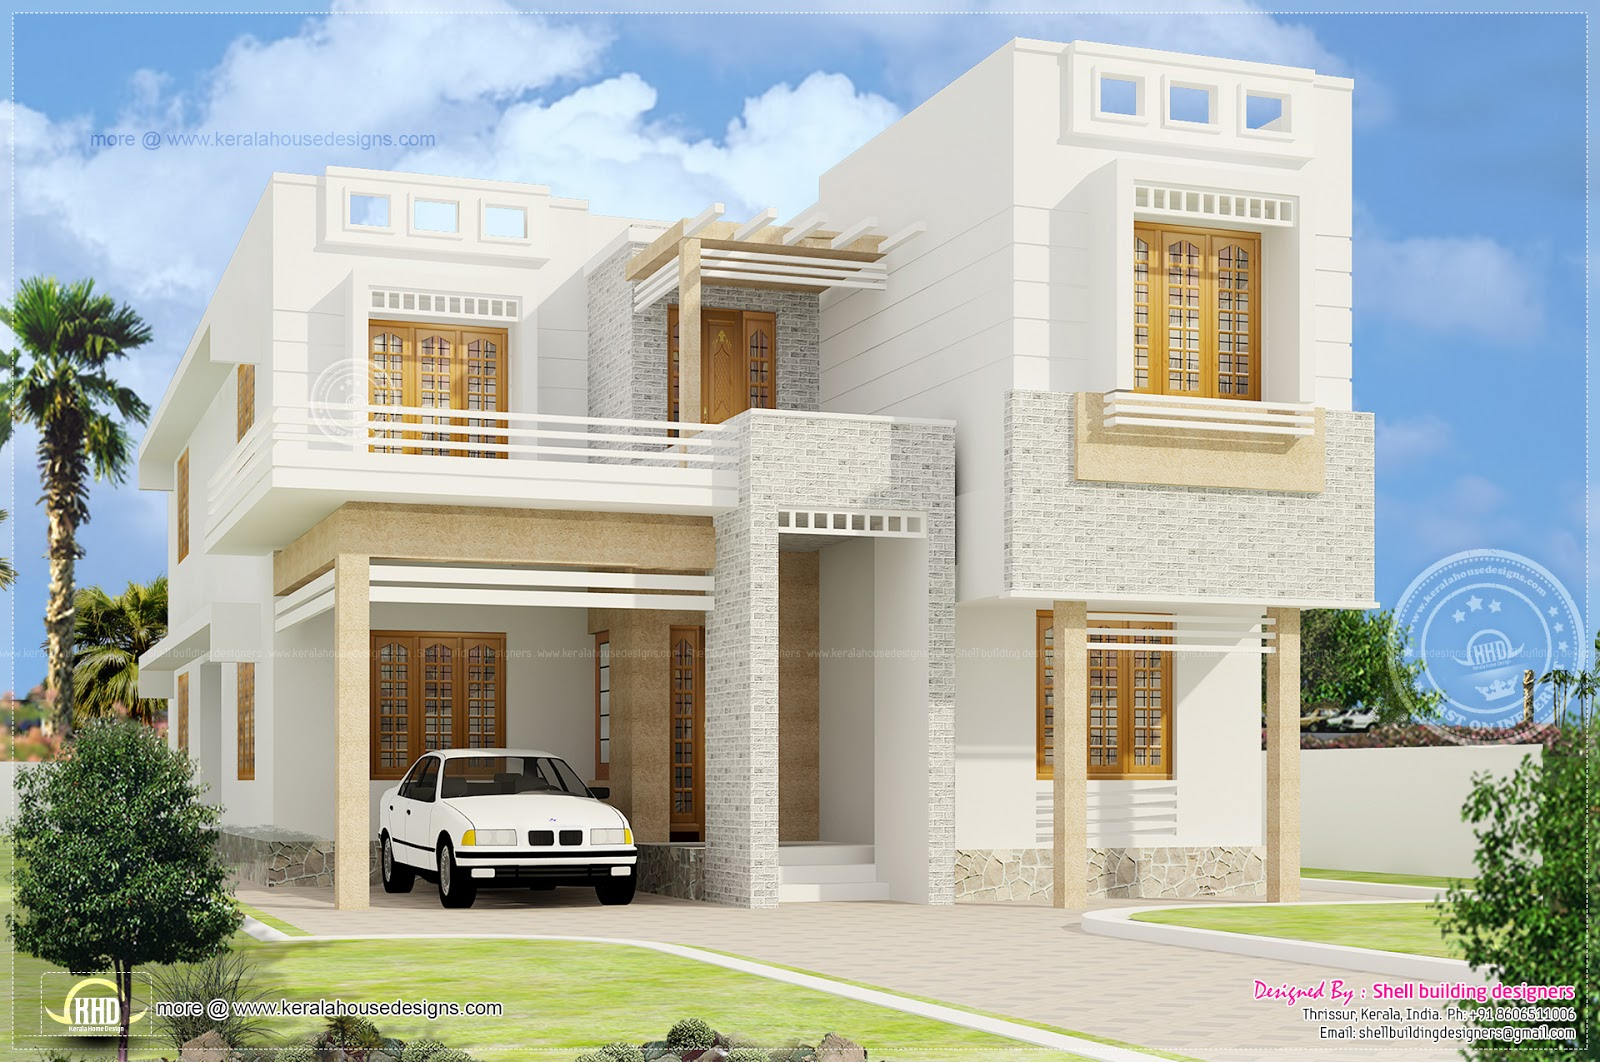 Beautiful 4 bedroom house exterior elevation kerala home for Beautiful home designs photos